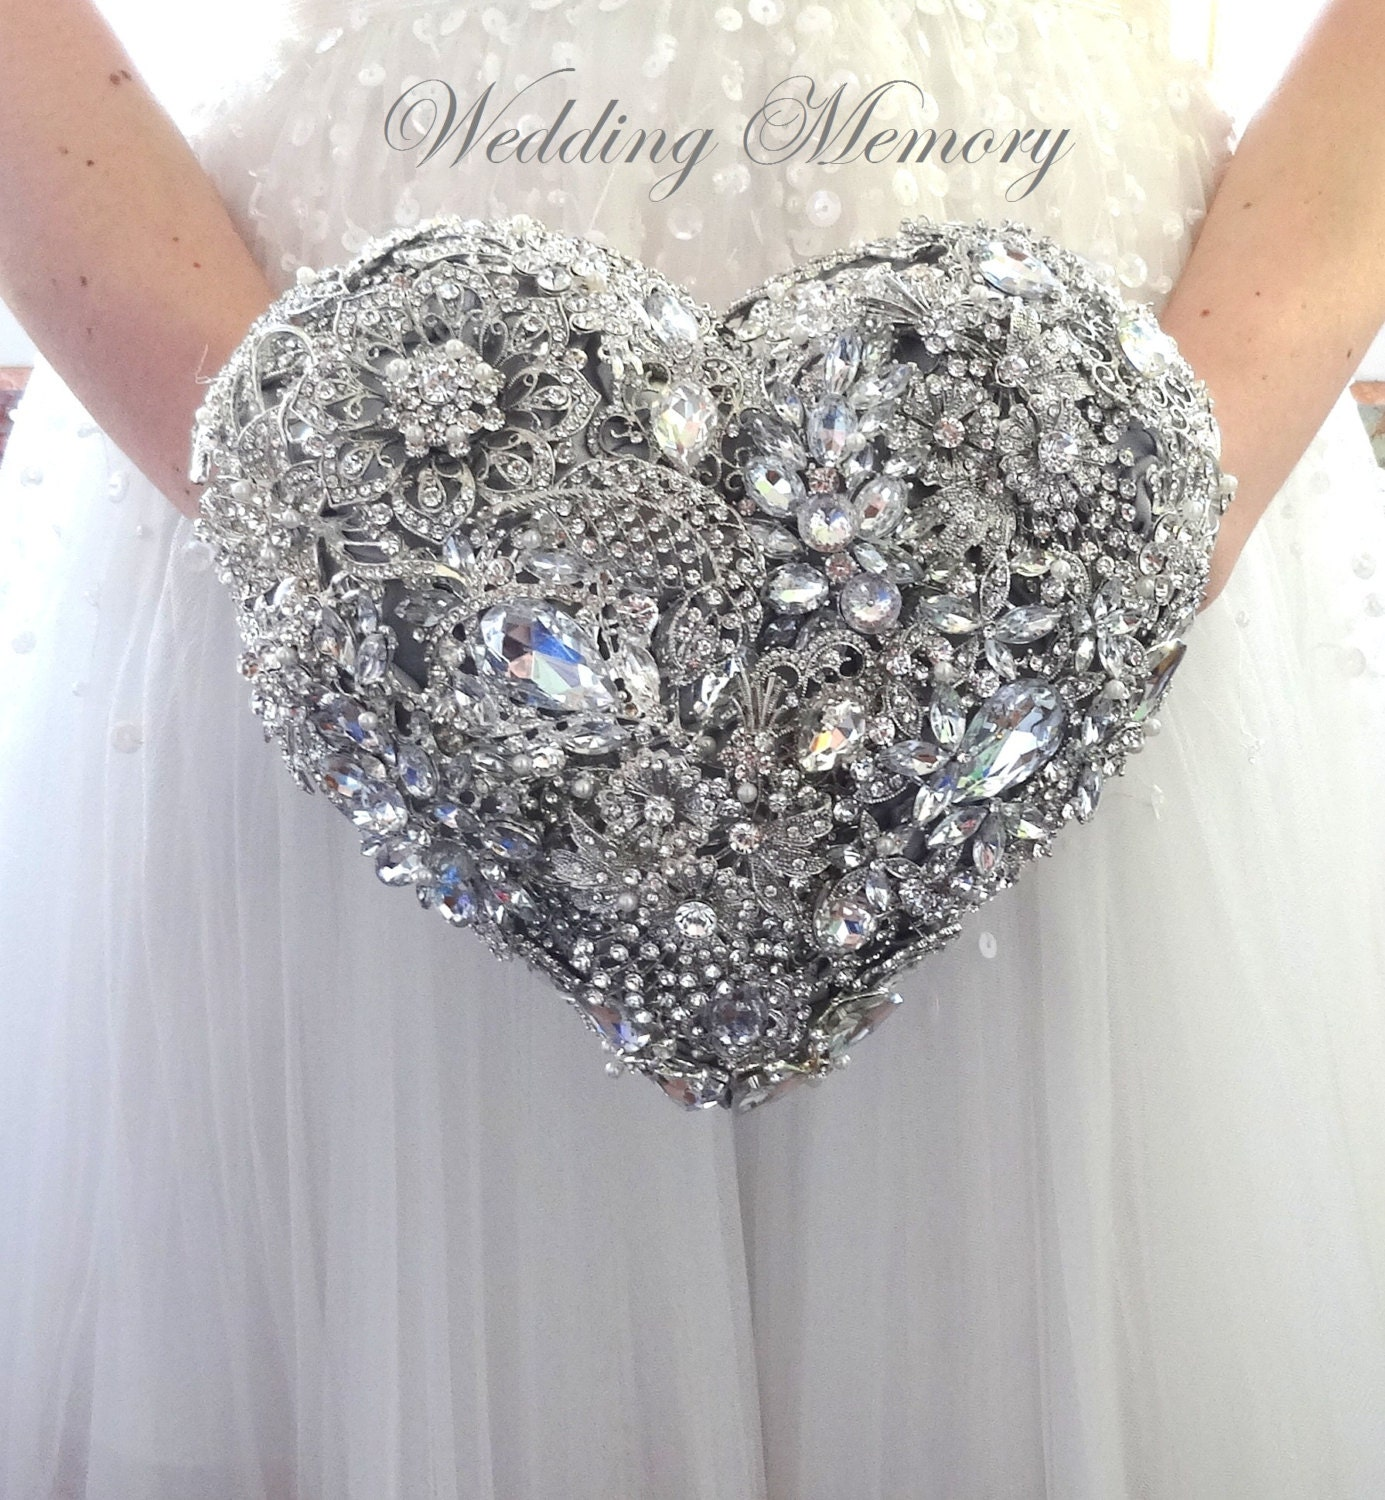 Silver Heart Shaped Brooch Bouquet Cascading Glamour Broach. Wish Wedding Rings. Cvd Diamond. Black Square Stud Earrings. Kunzite Engagement Rings. Black Onyx Rings. Wiki Diamond. Rolex Day Date Watches. Baselworld Watches